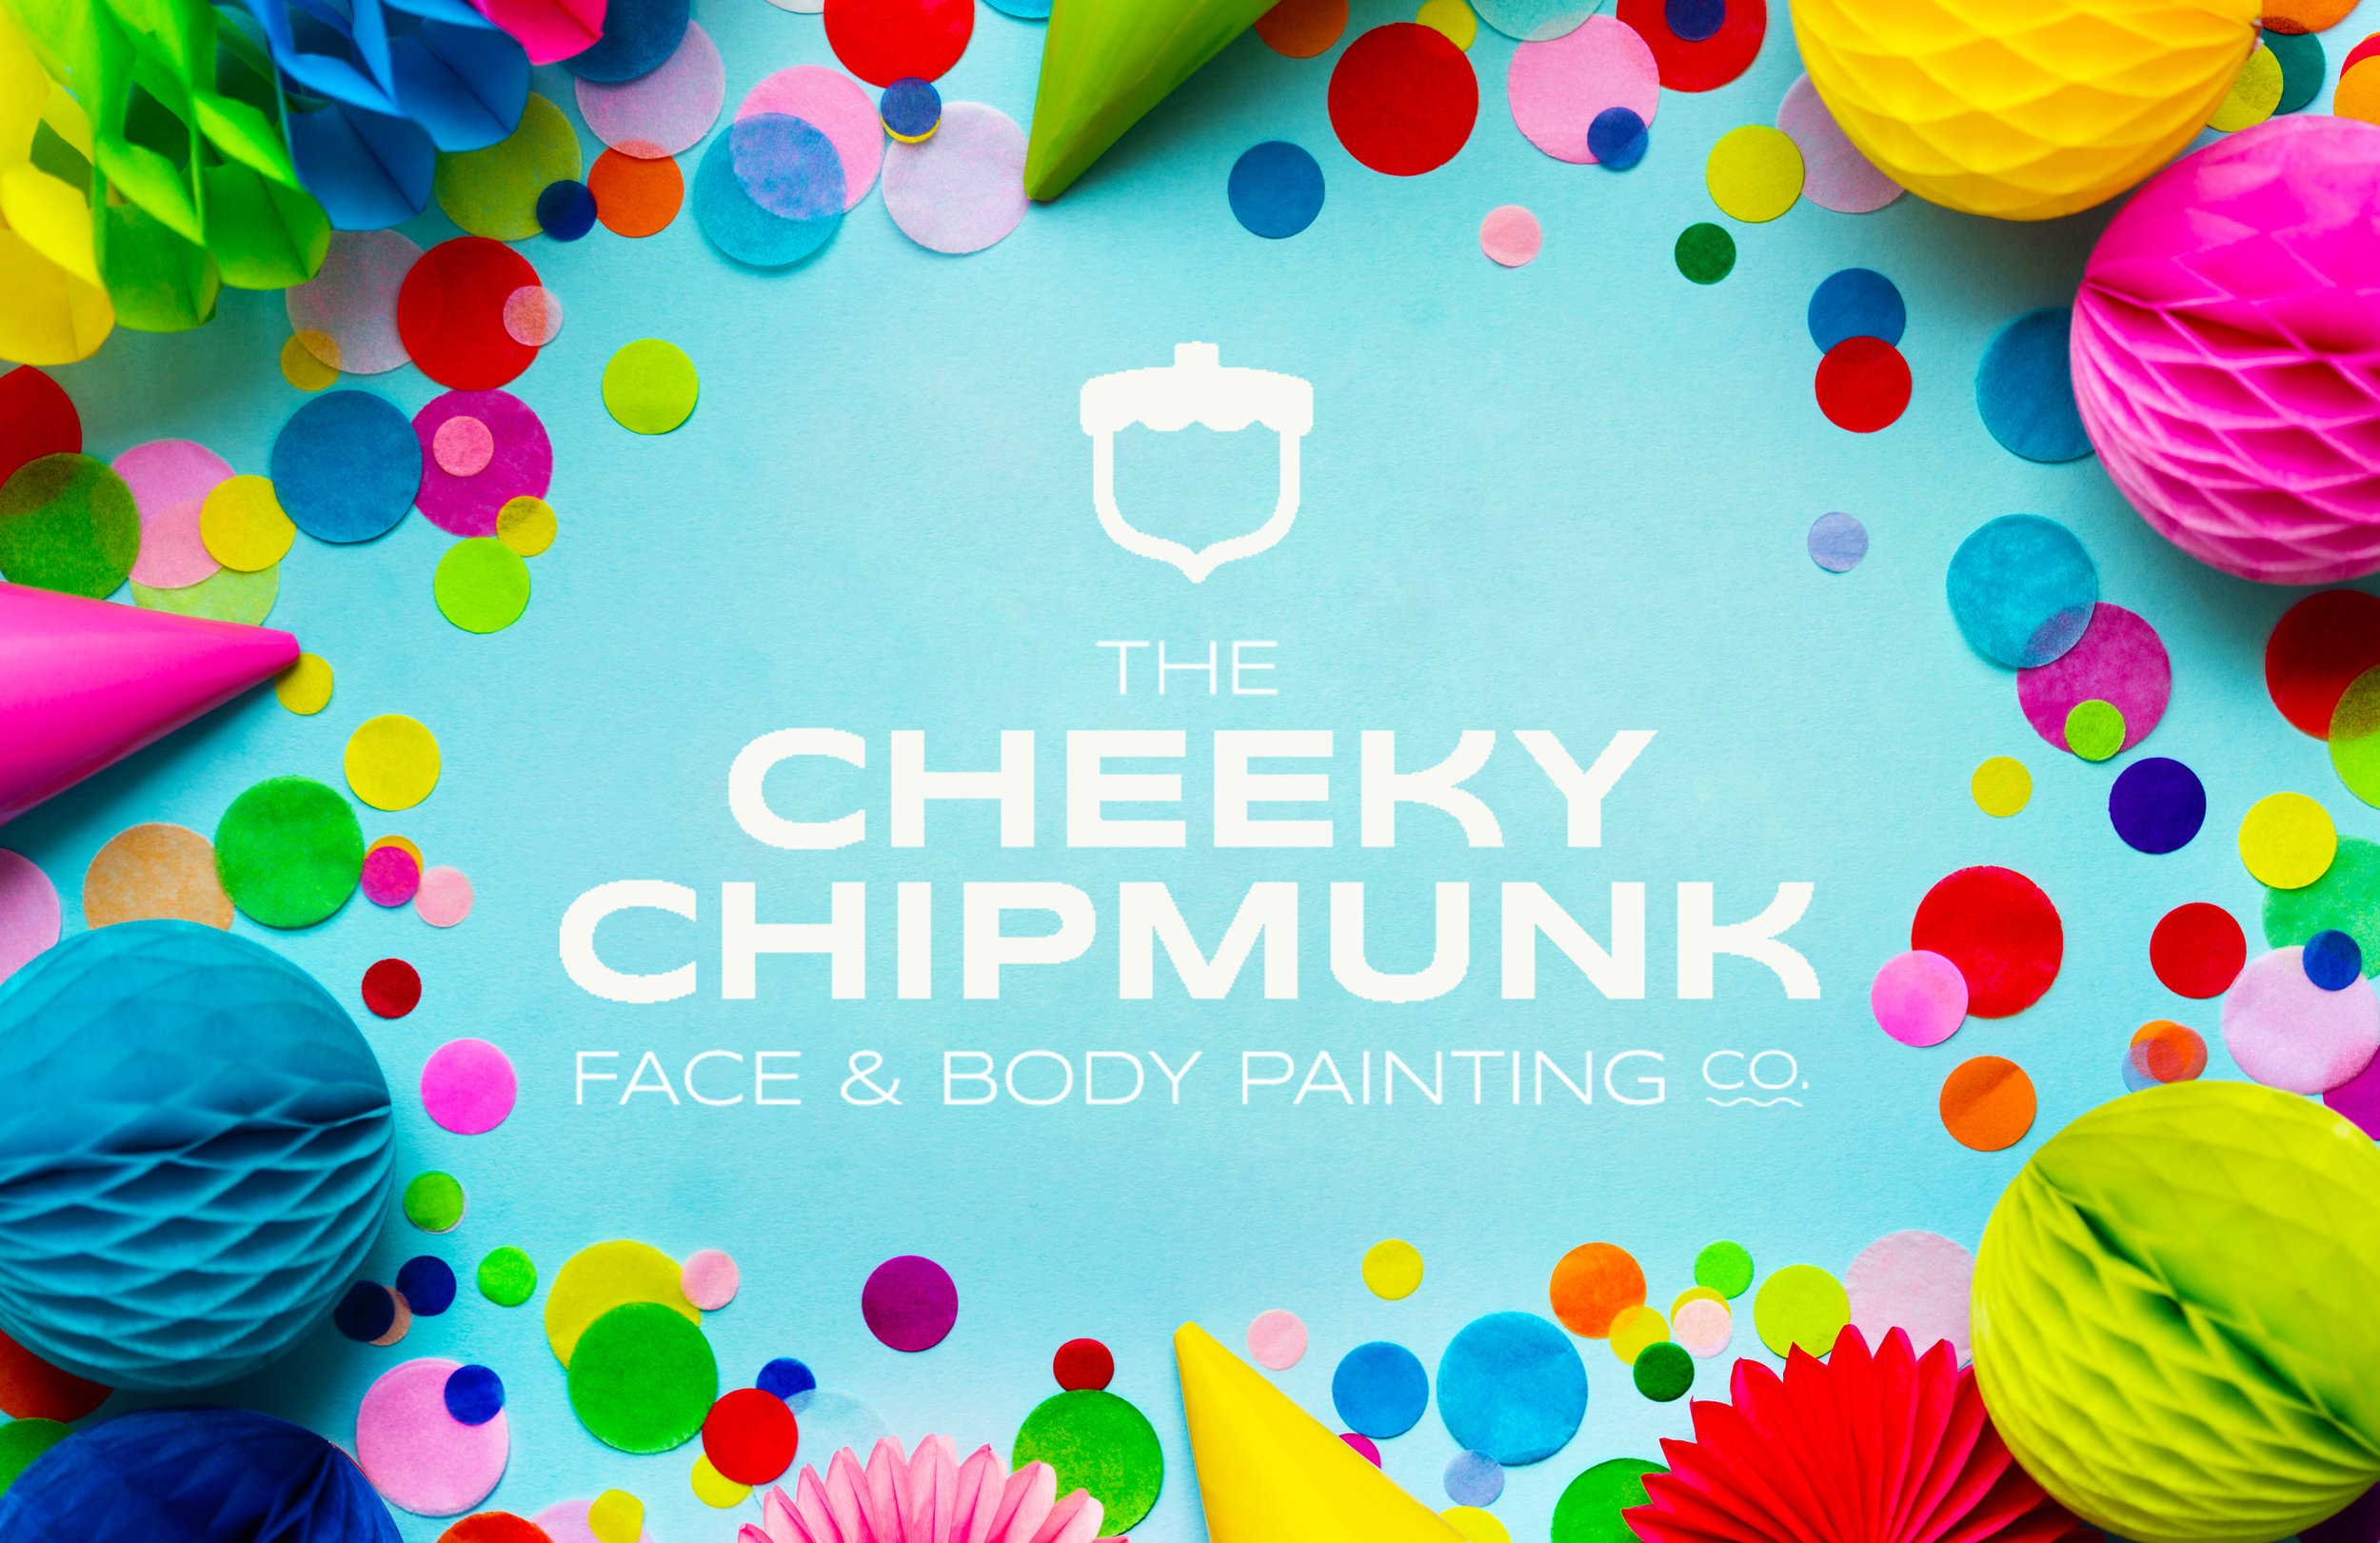 lenore-koppelman-the-cheeky-chipmunk-logo-blue-acorn-birthday-party-supplies-confetti-party-hats-rainbow-colorful-kids-party-fun